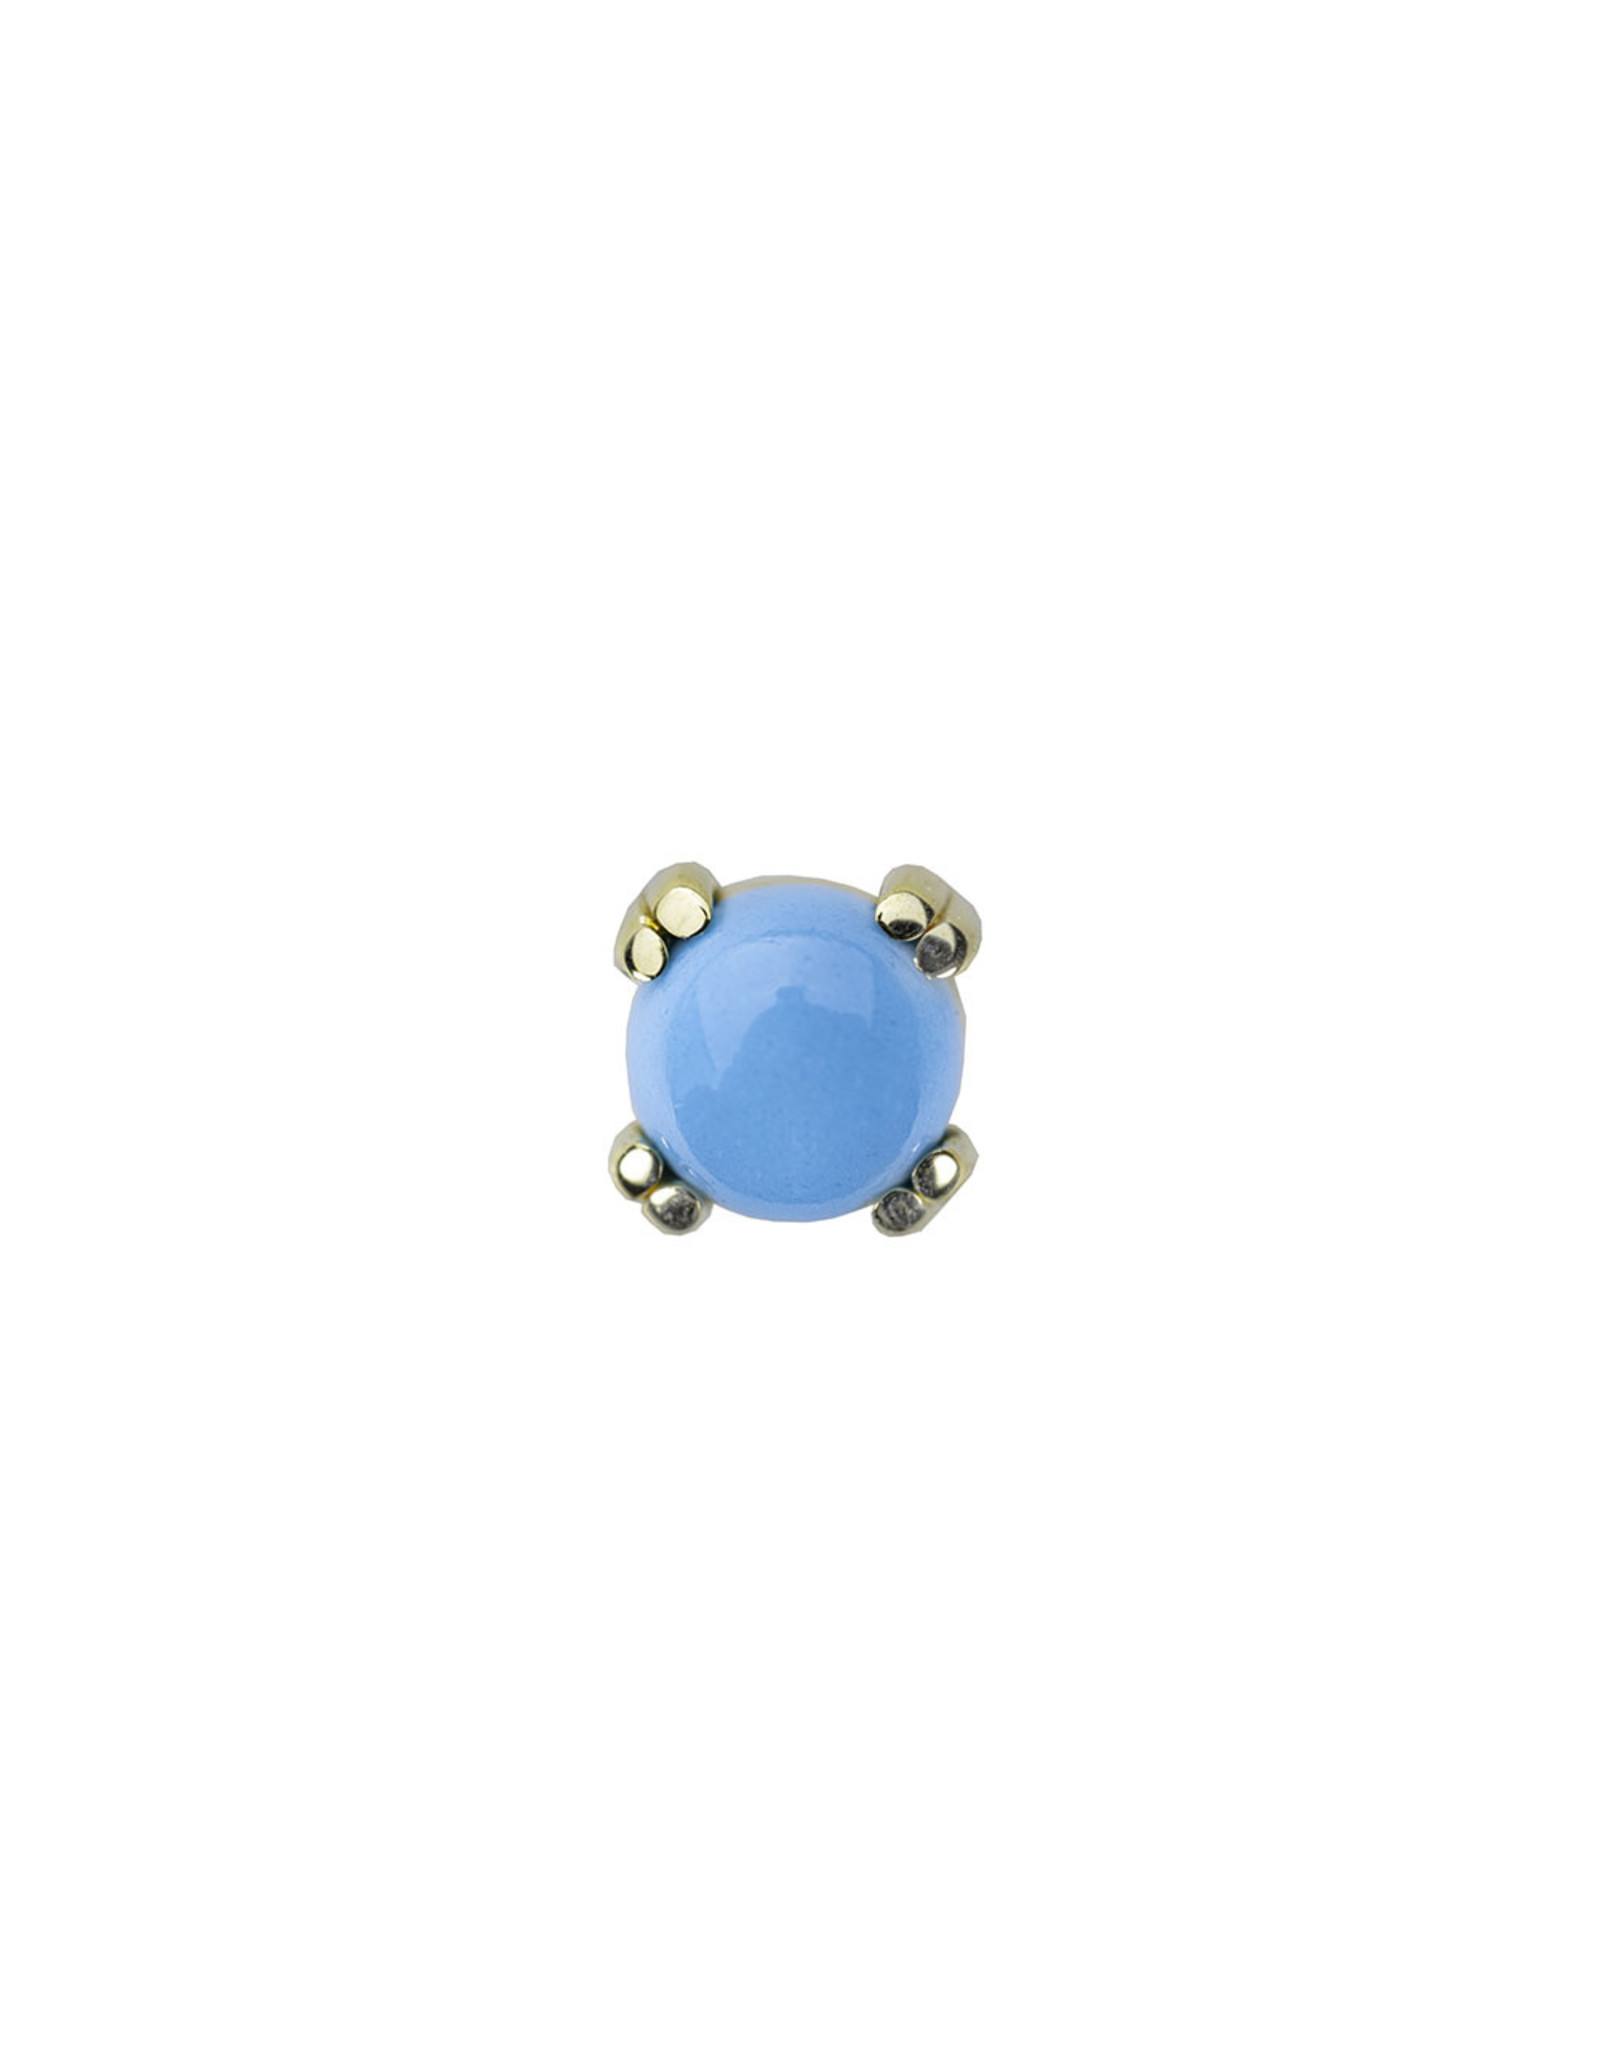 BVLA BVLA prong-set cabochon press-fit end with turquoise